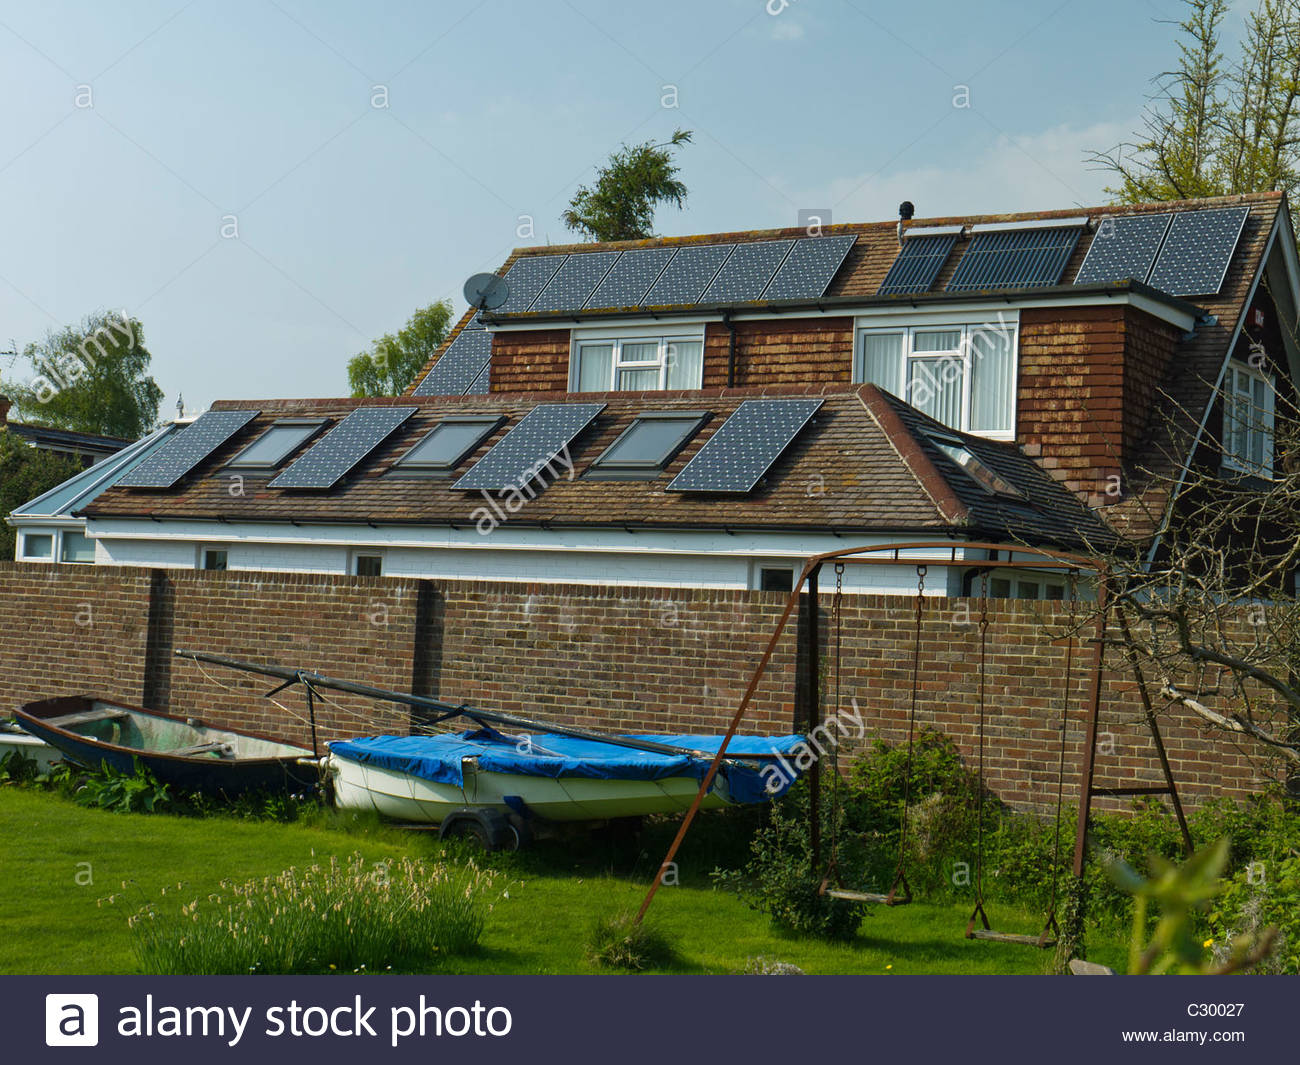 England ,UK Hampshire Solar Panels on House Roof Energy Power Electricity Hot Water - Stock Image